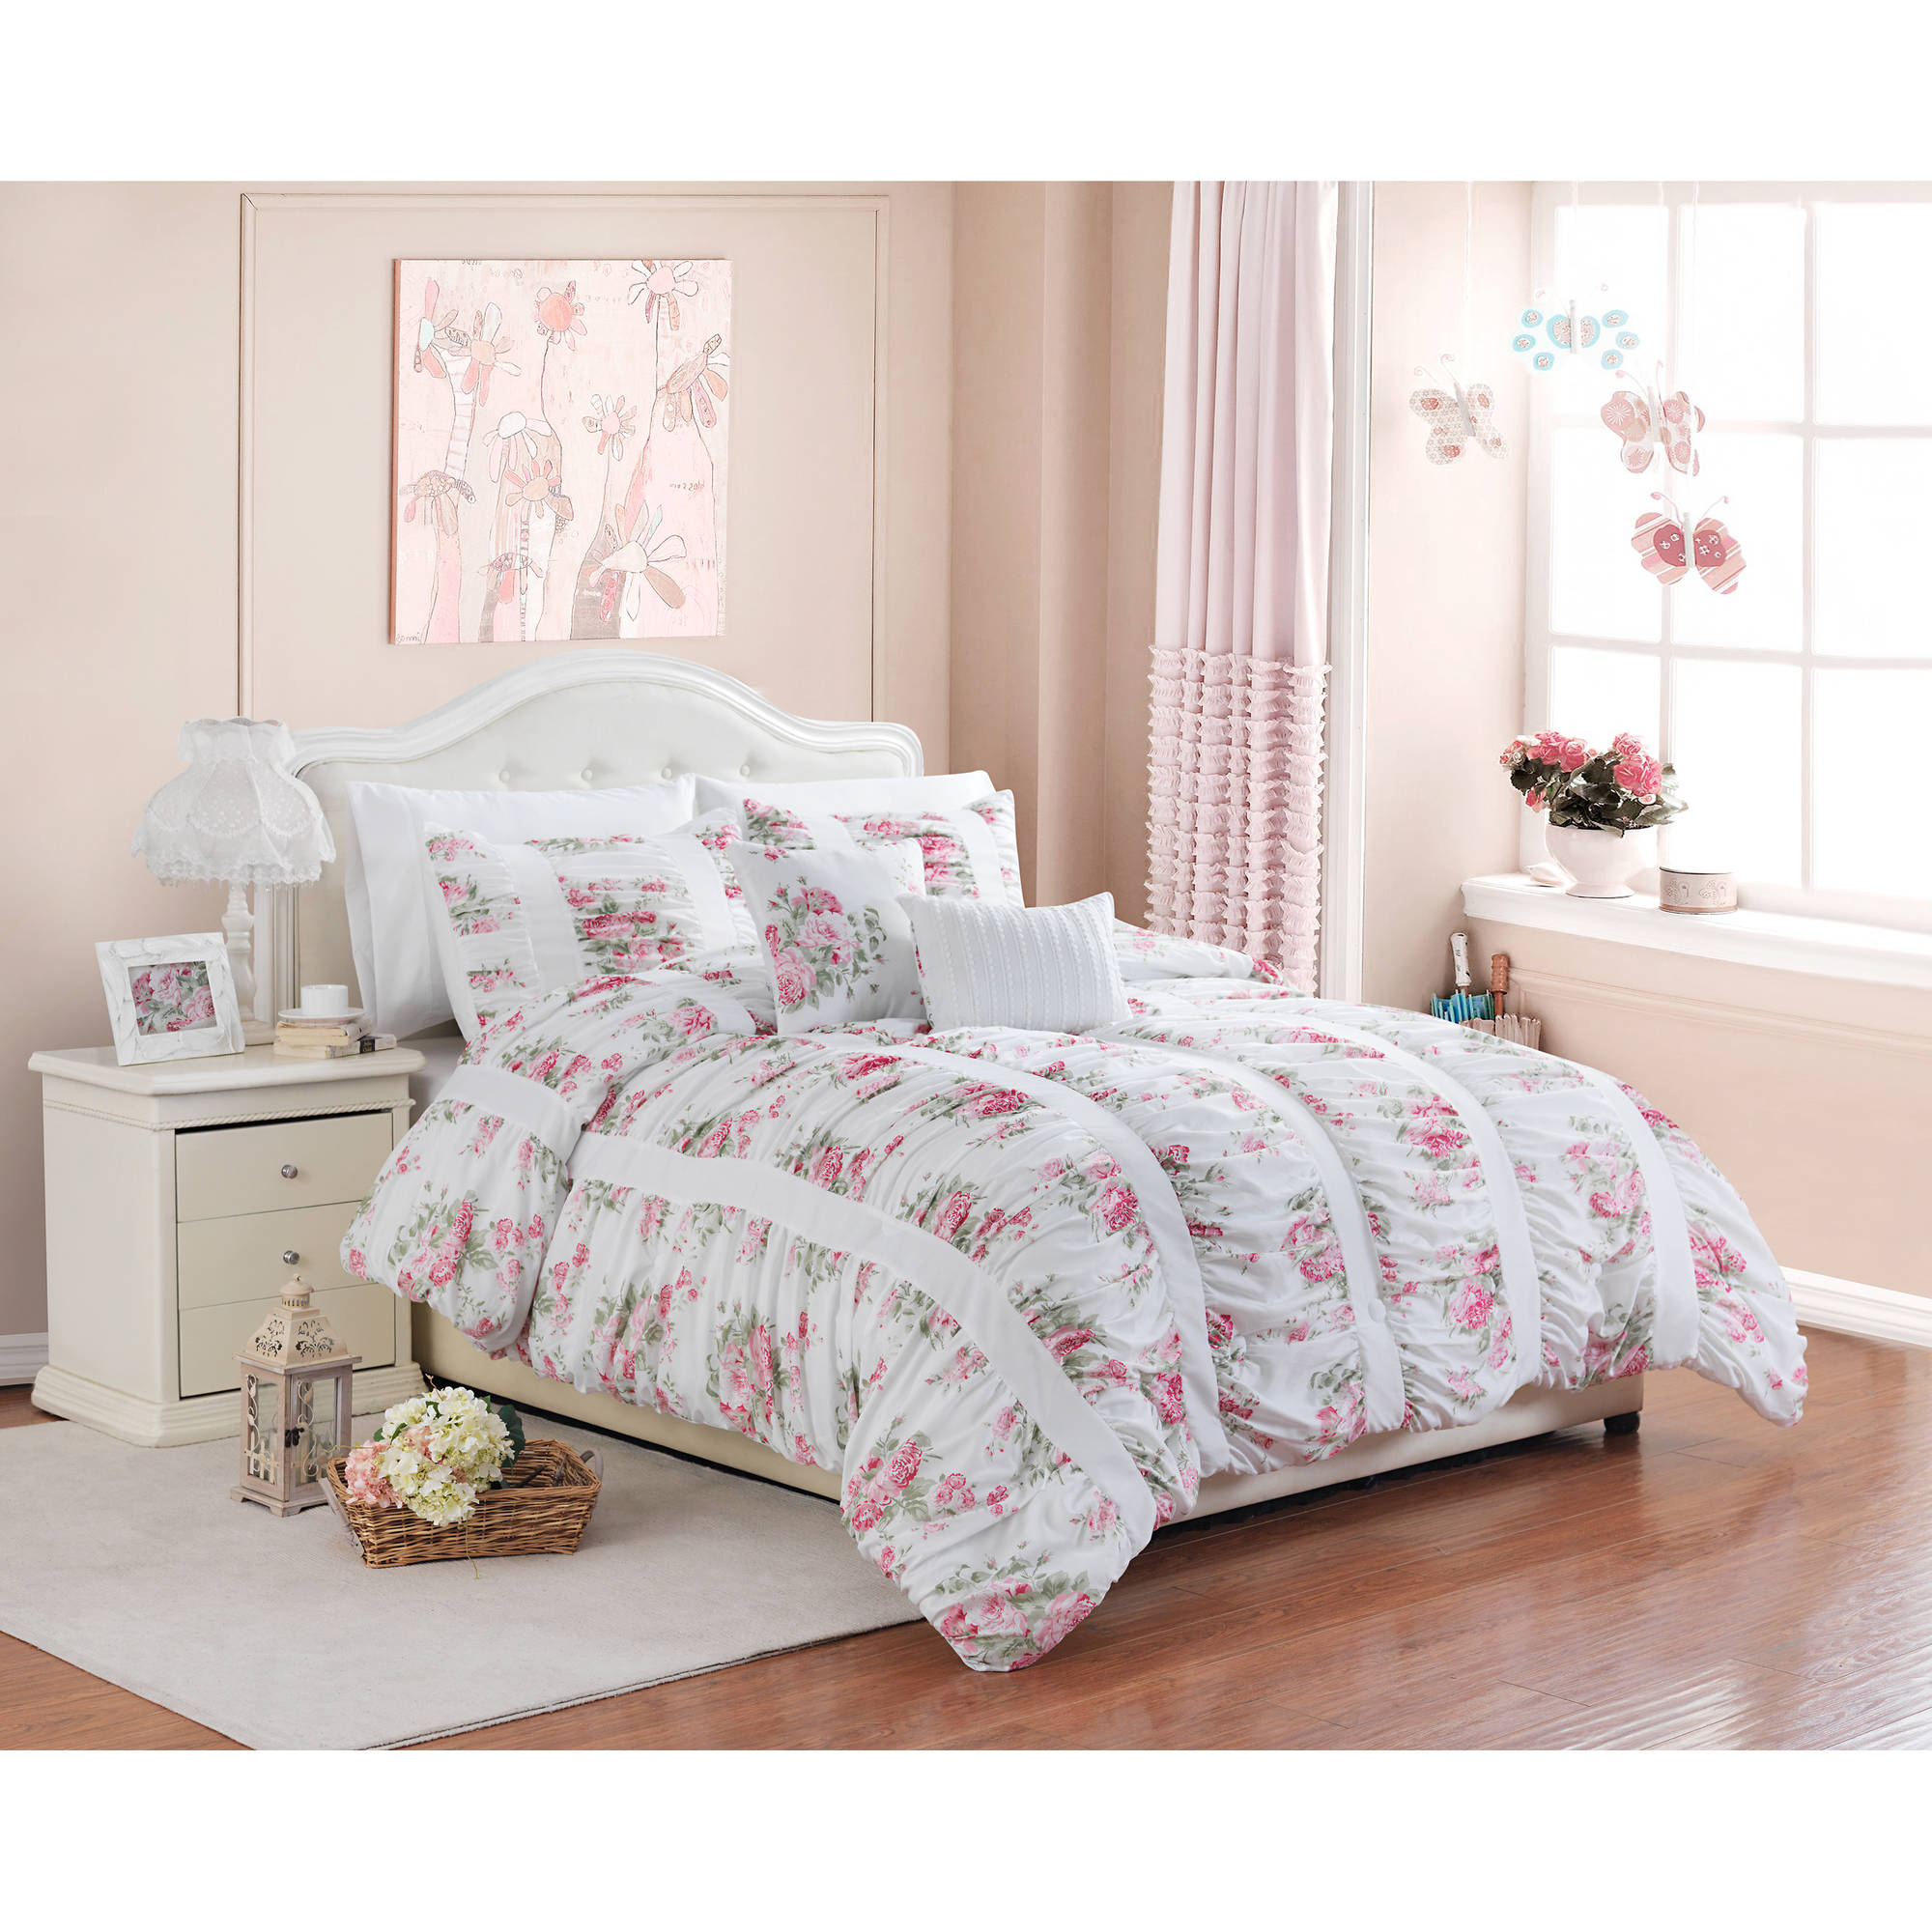 charlotte and comforter floral set ashley blue bedding p sets cotton by queen white laura